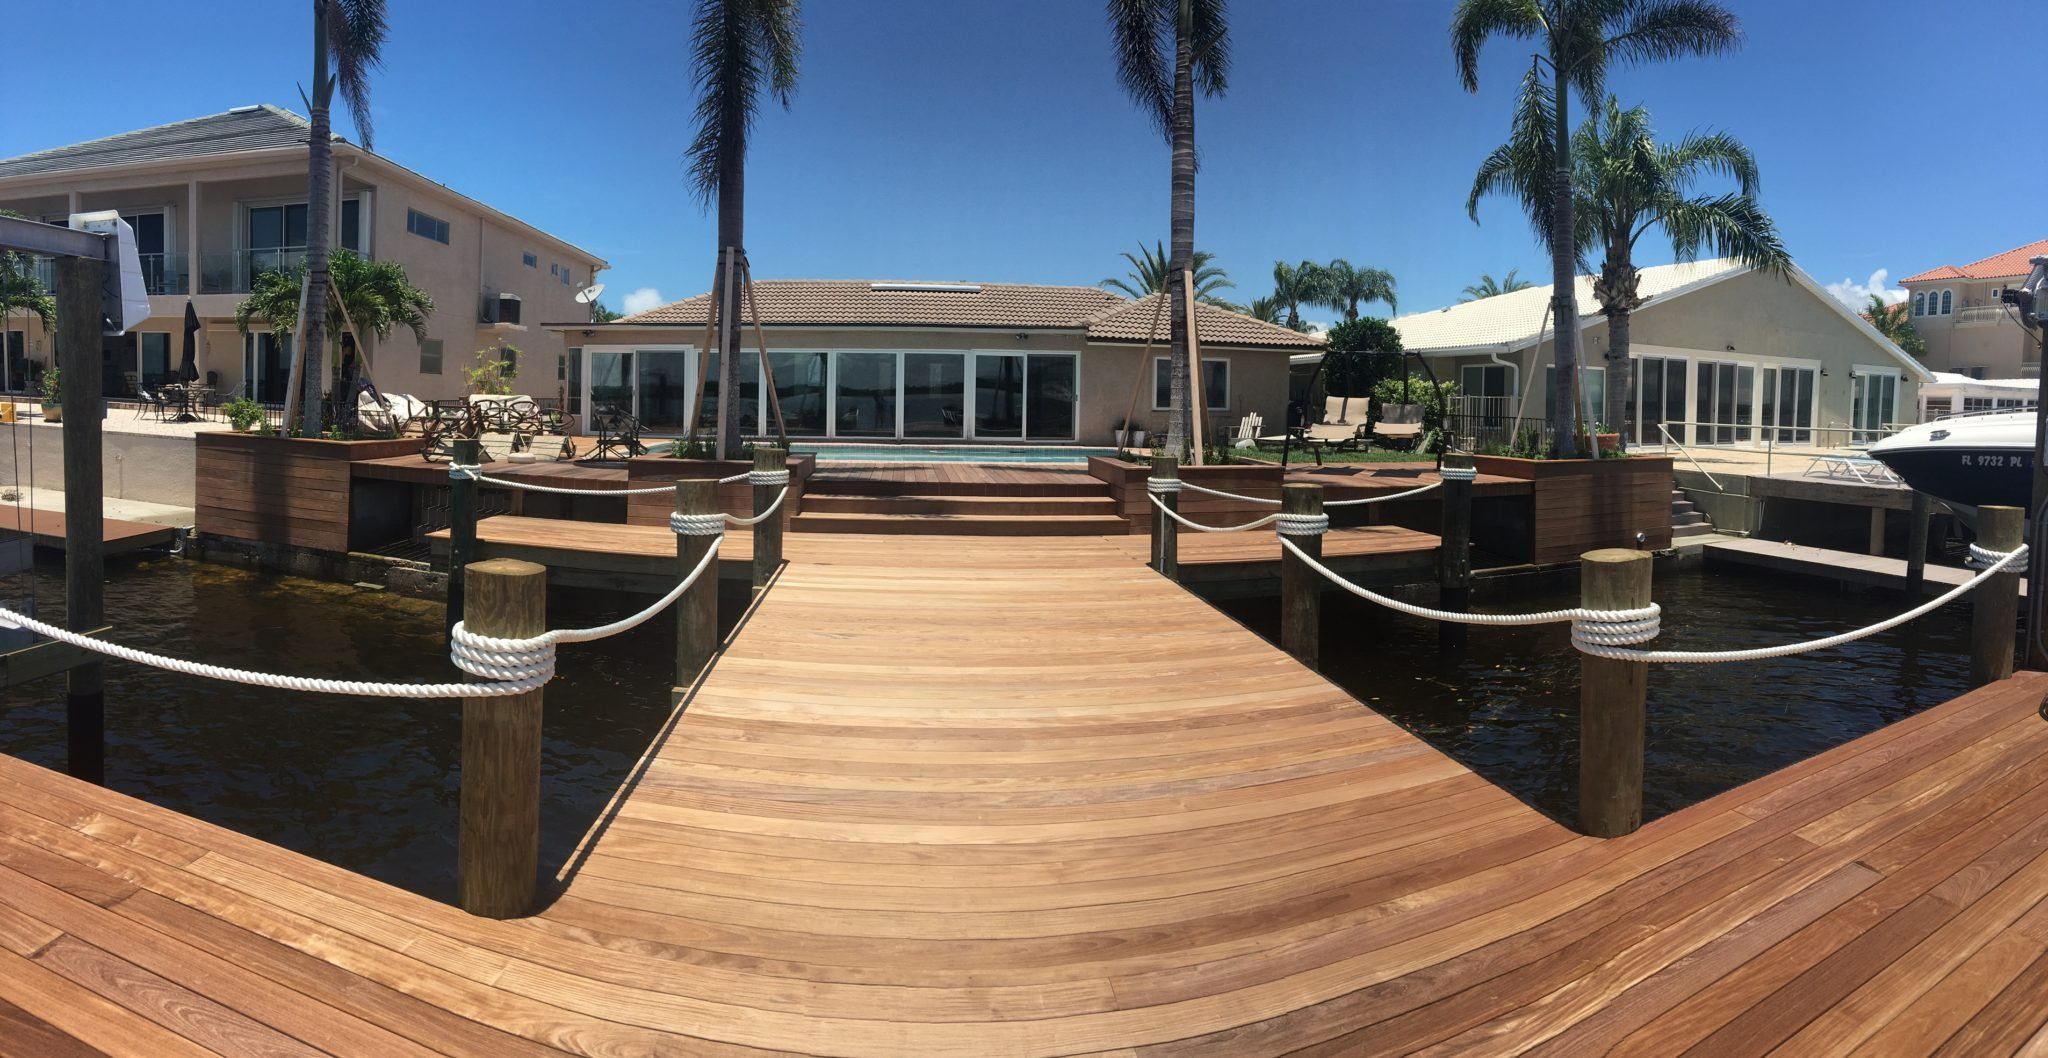 A composite deck with composite planter boxes on the water